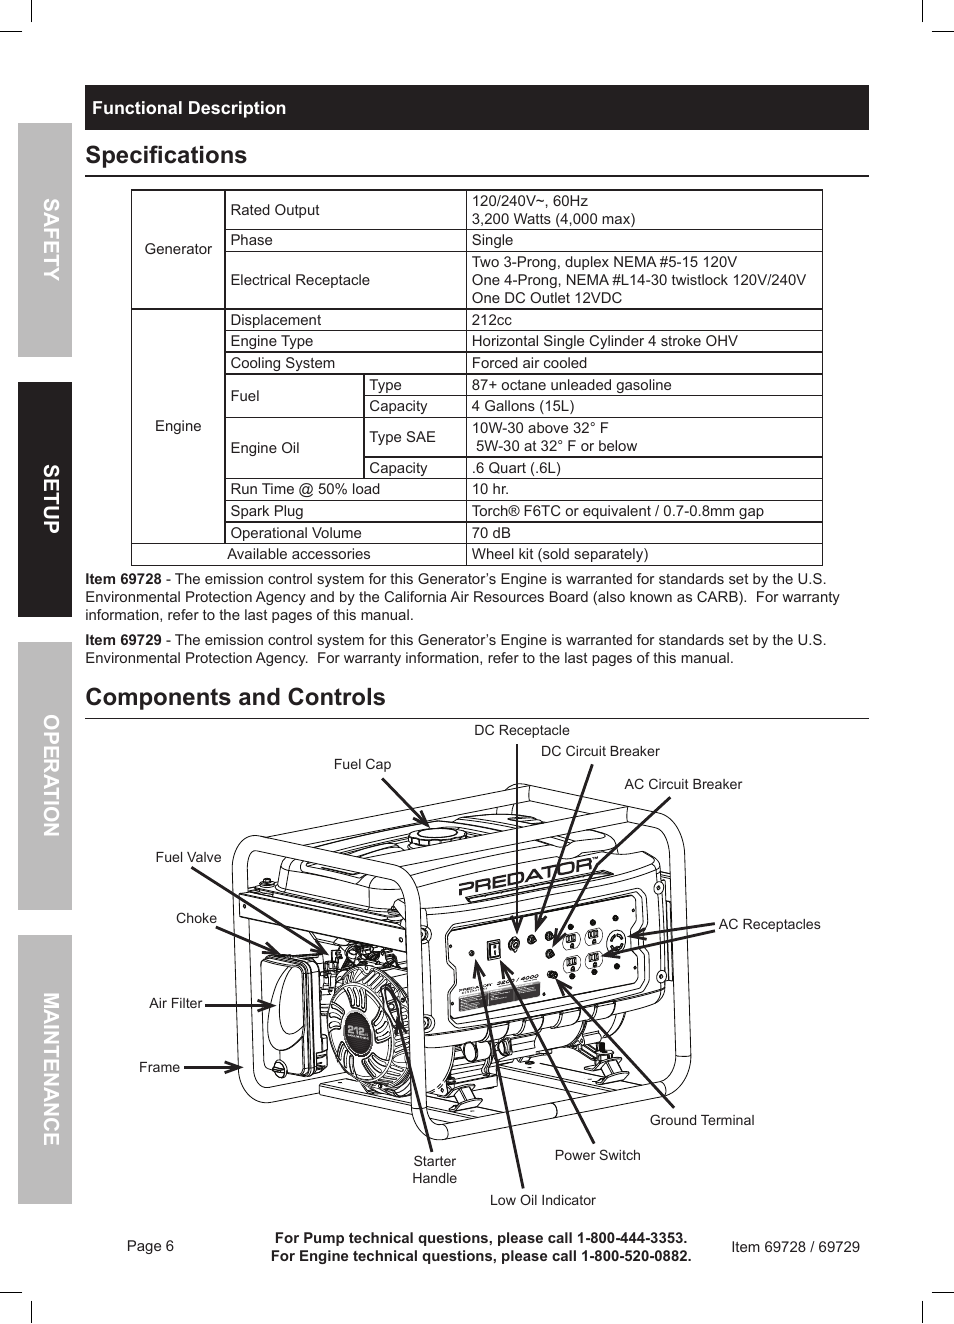 hight resolution of specifications components and controls harbor freight predator generator wiring diagram